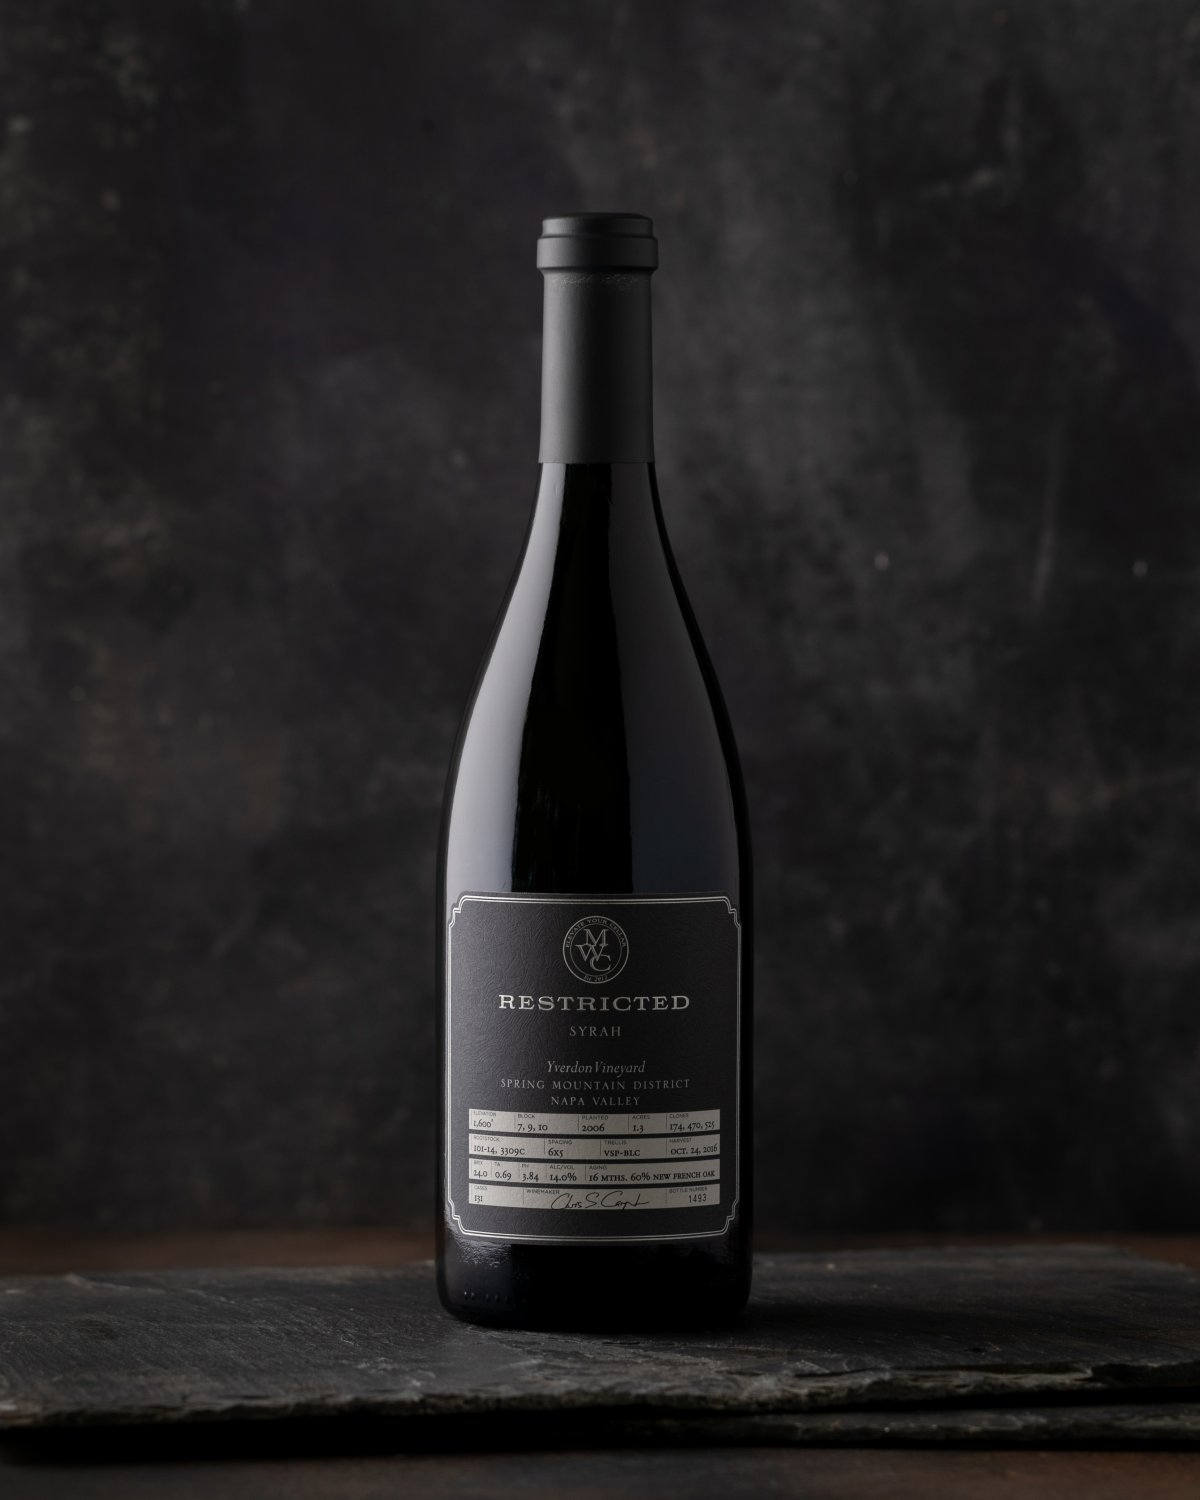 2014 Restricted Spring District Syrah